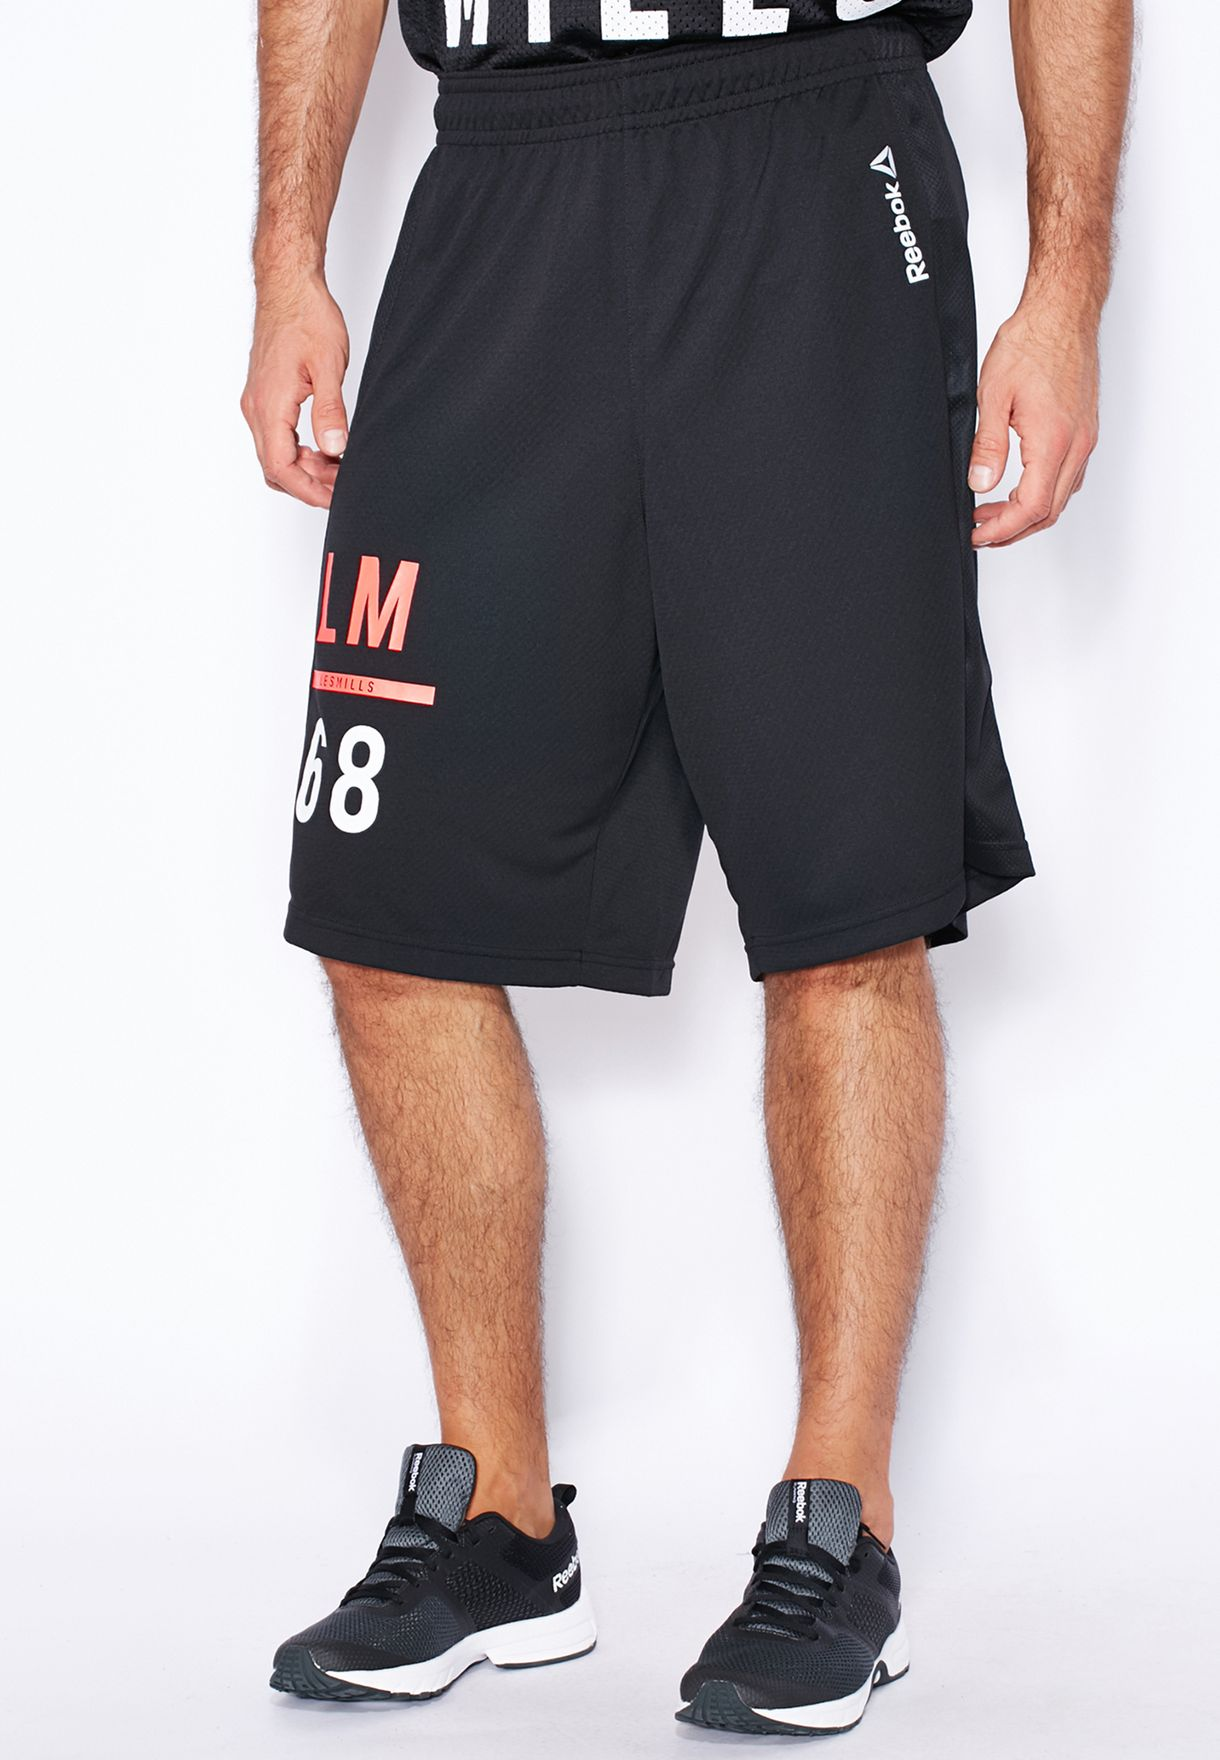 Humo Un evento detergente  Buy Reebok black Les Mills Basketball Shorts for Men in MENA, Worldwide |  AB3177